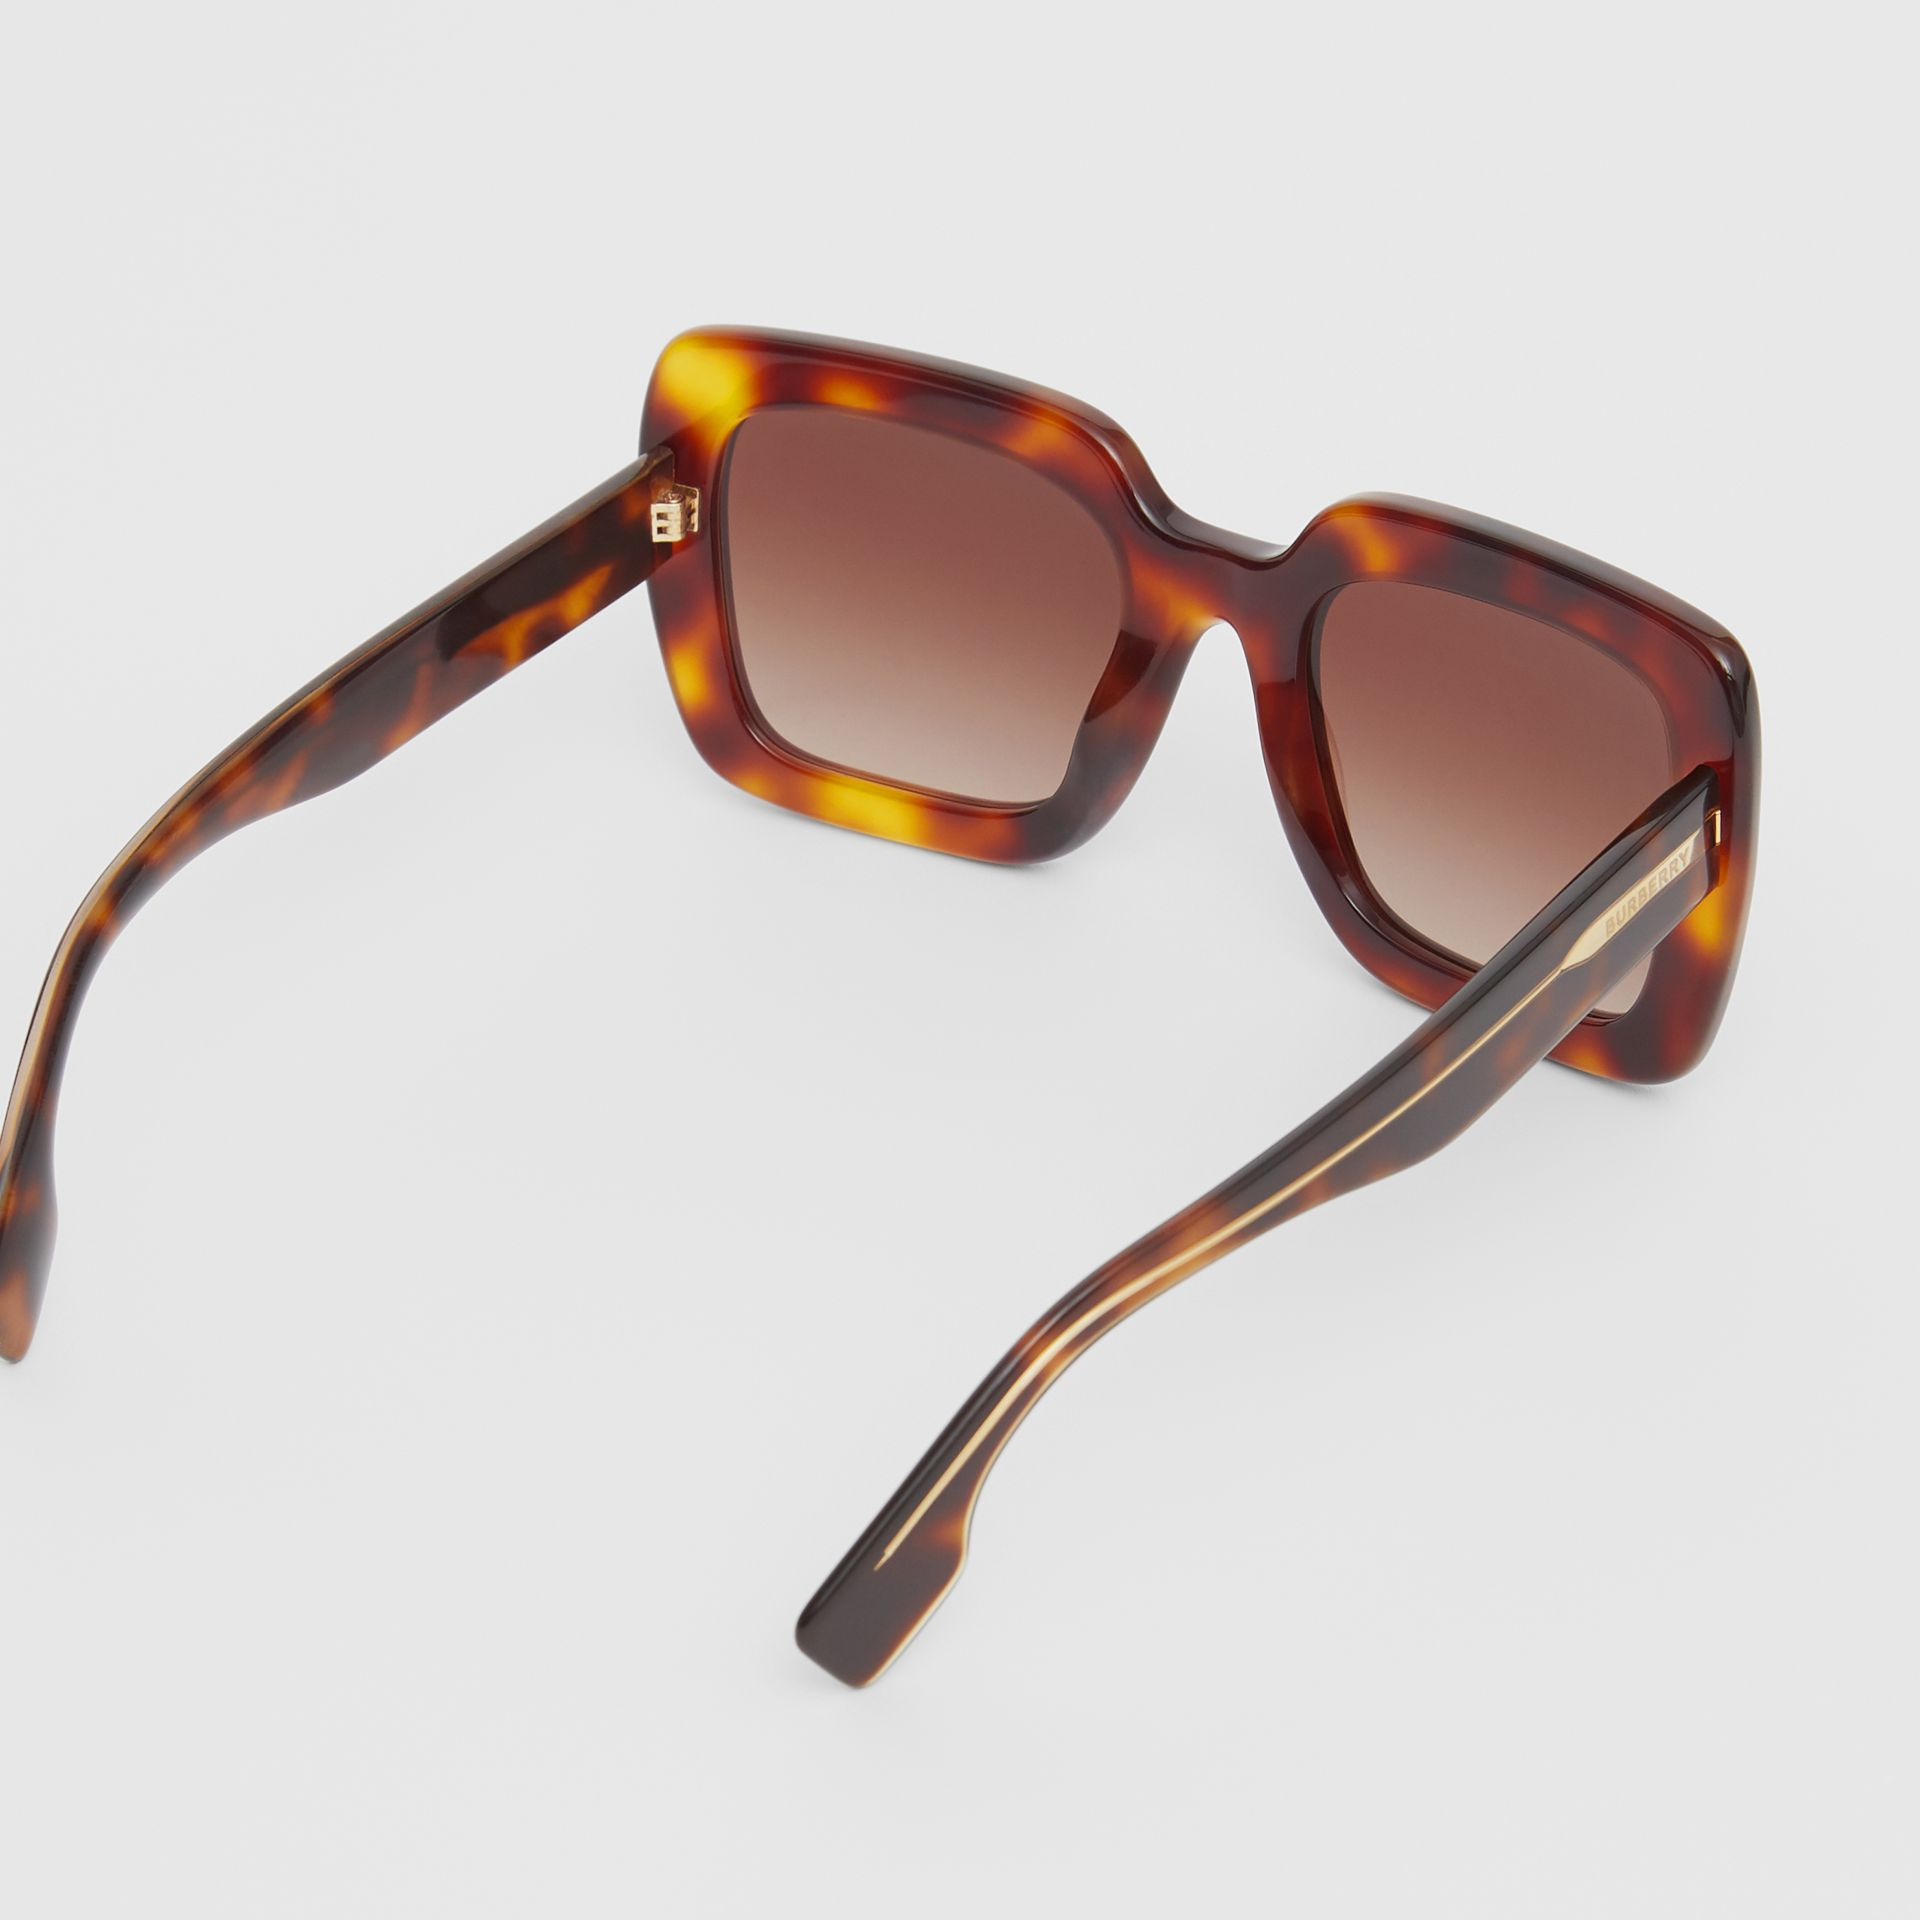 Oversized Square Frame Sunglasses in Tortoiseshell - Women | Burberry United States - gallery image 3